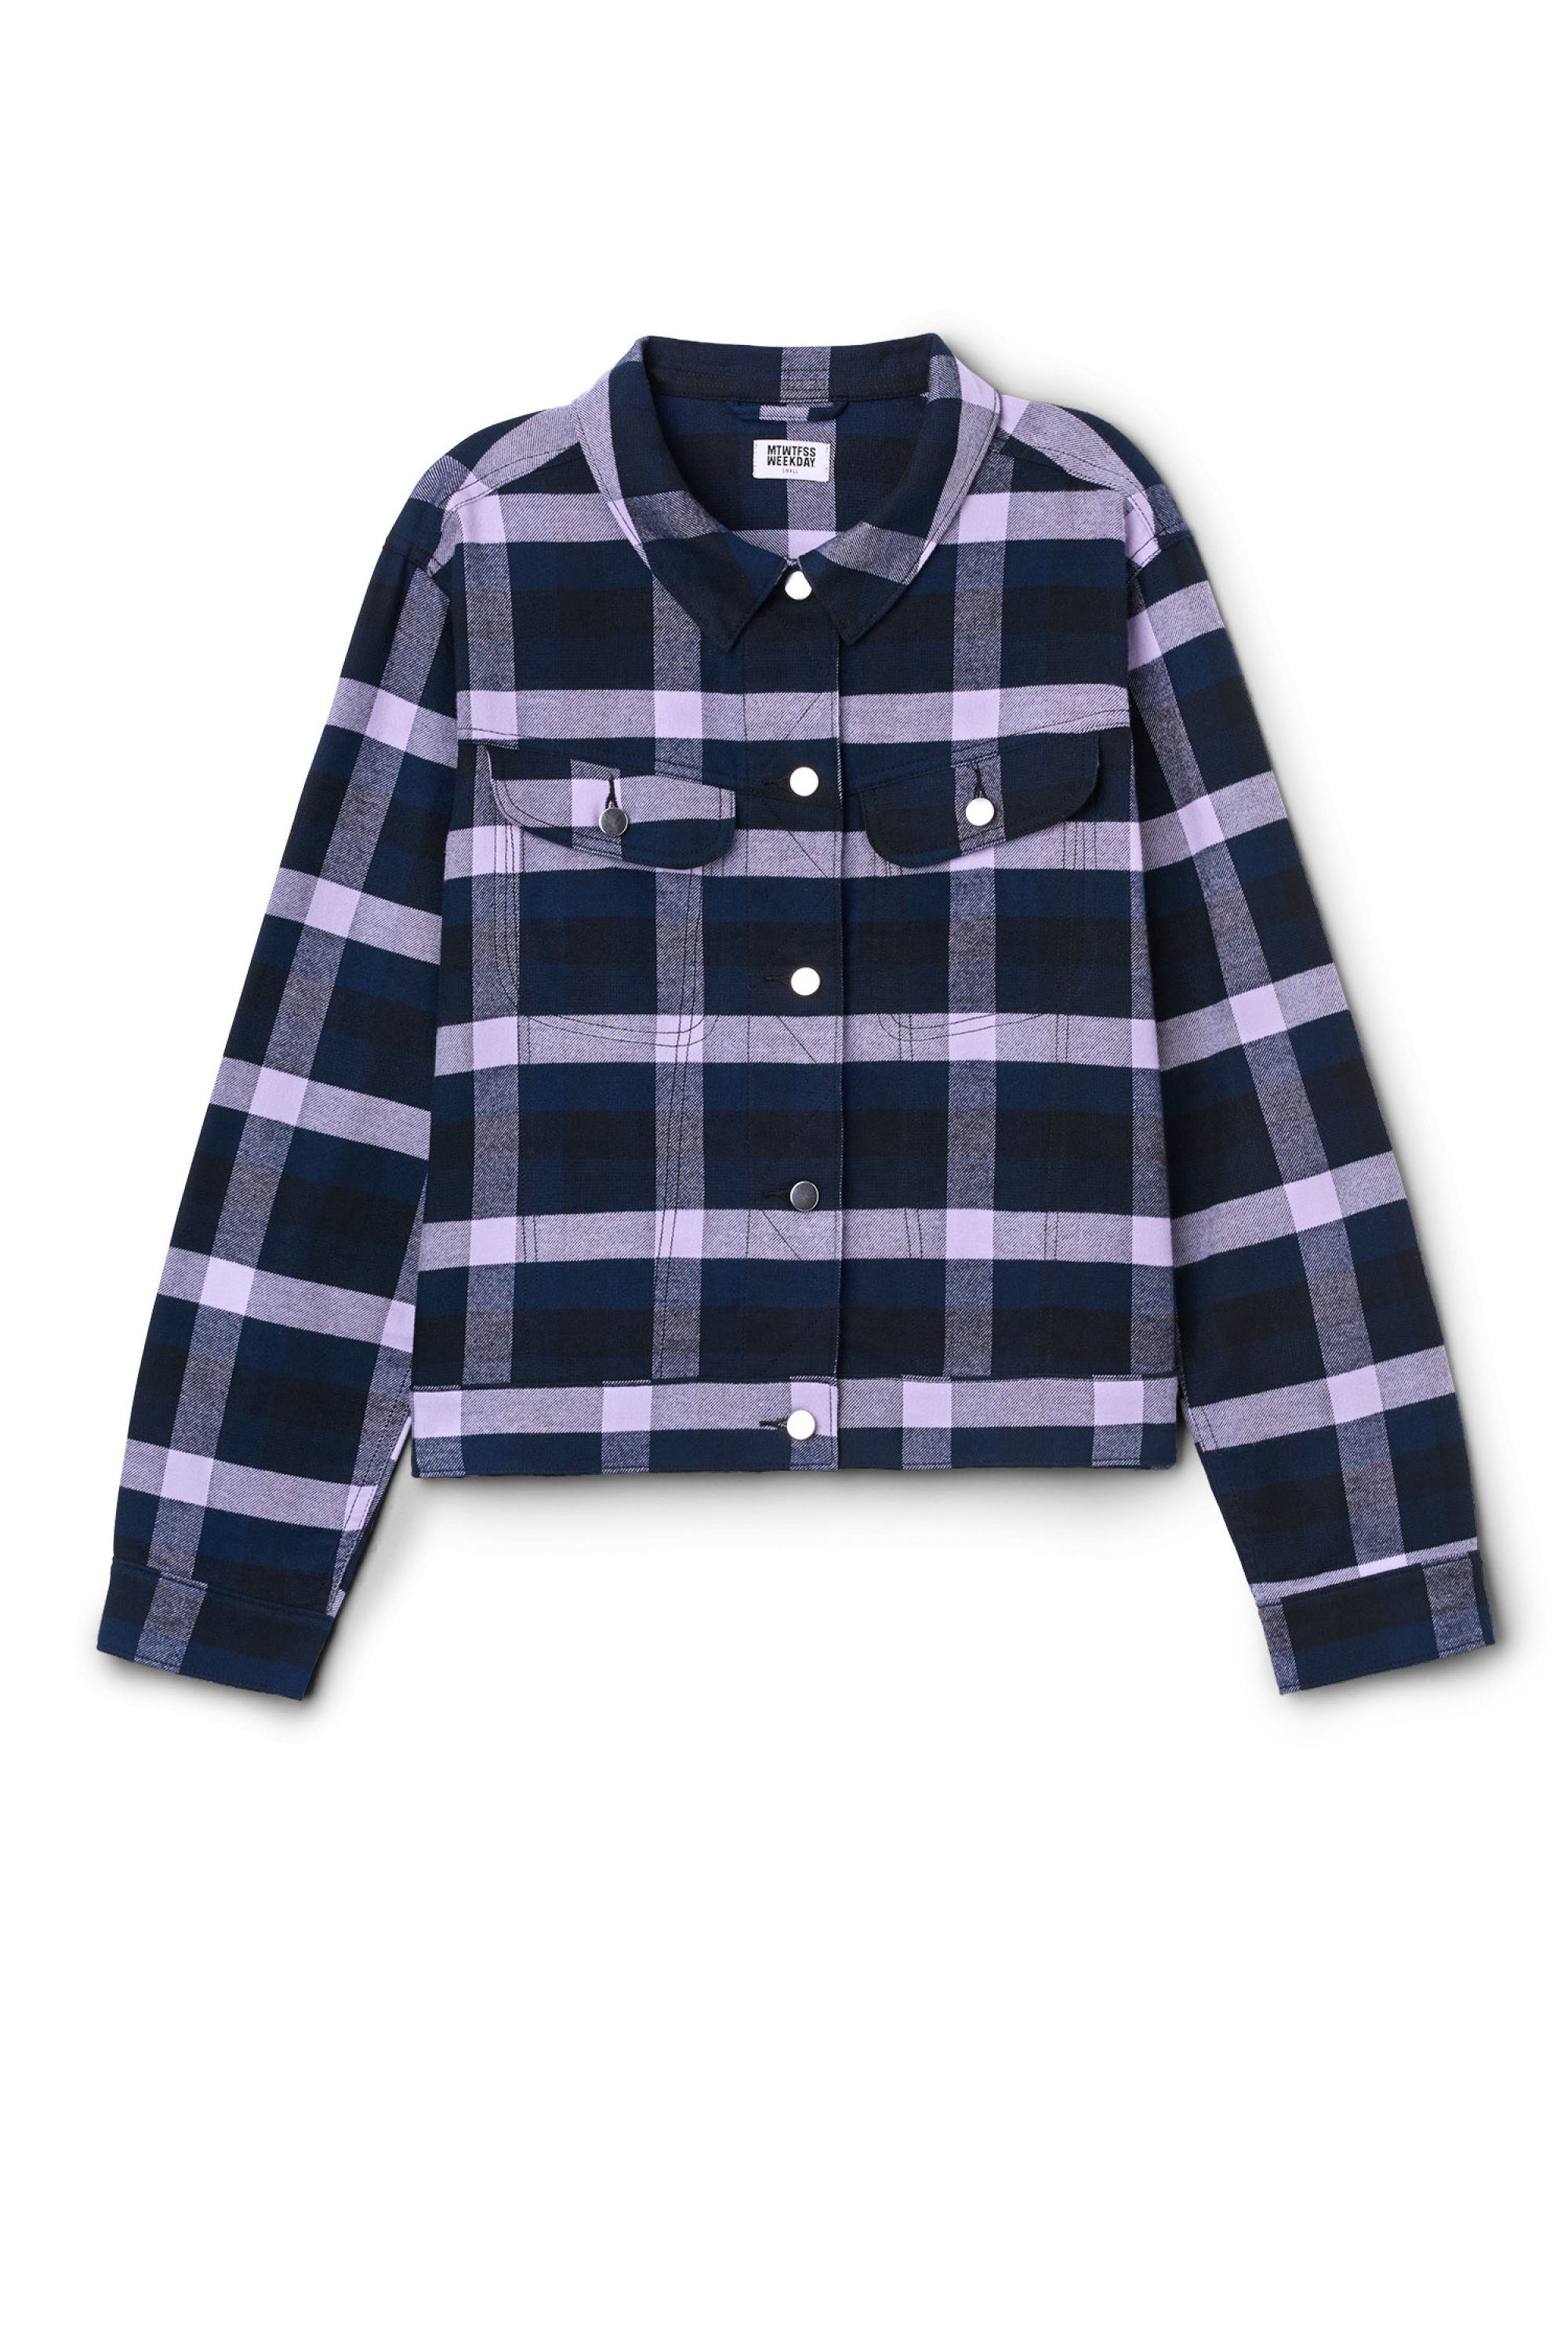 Weekday Swinton Shirt